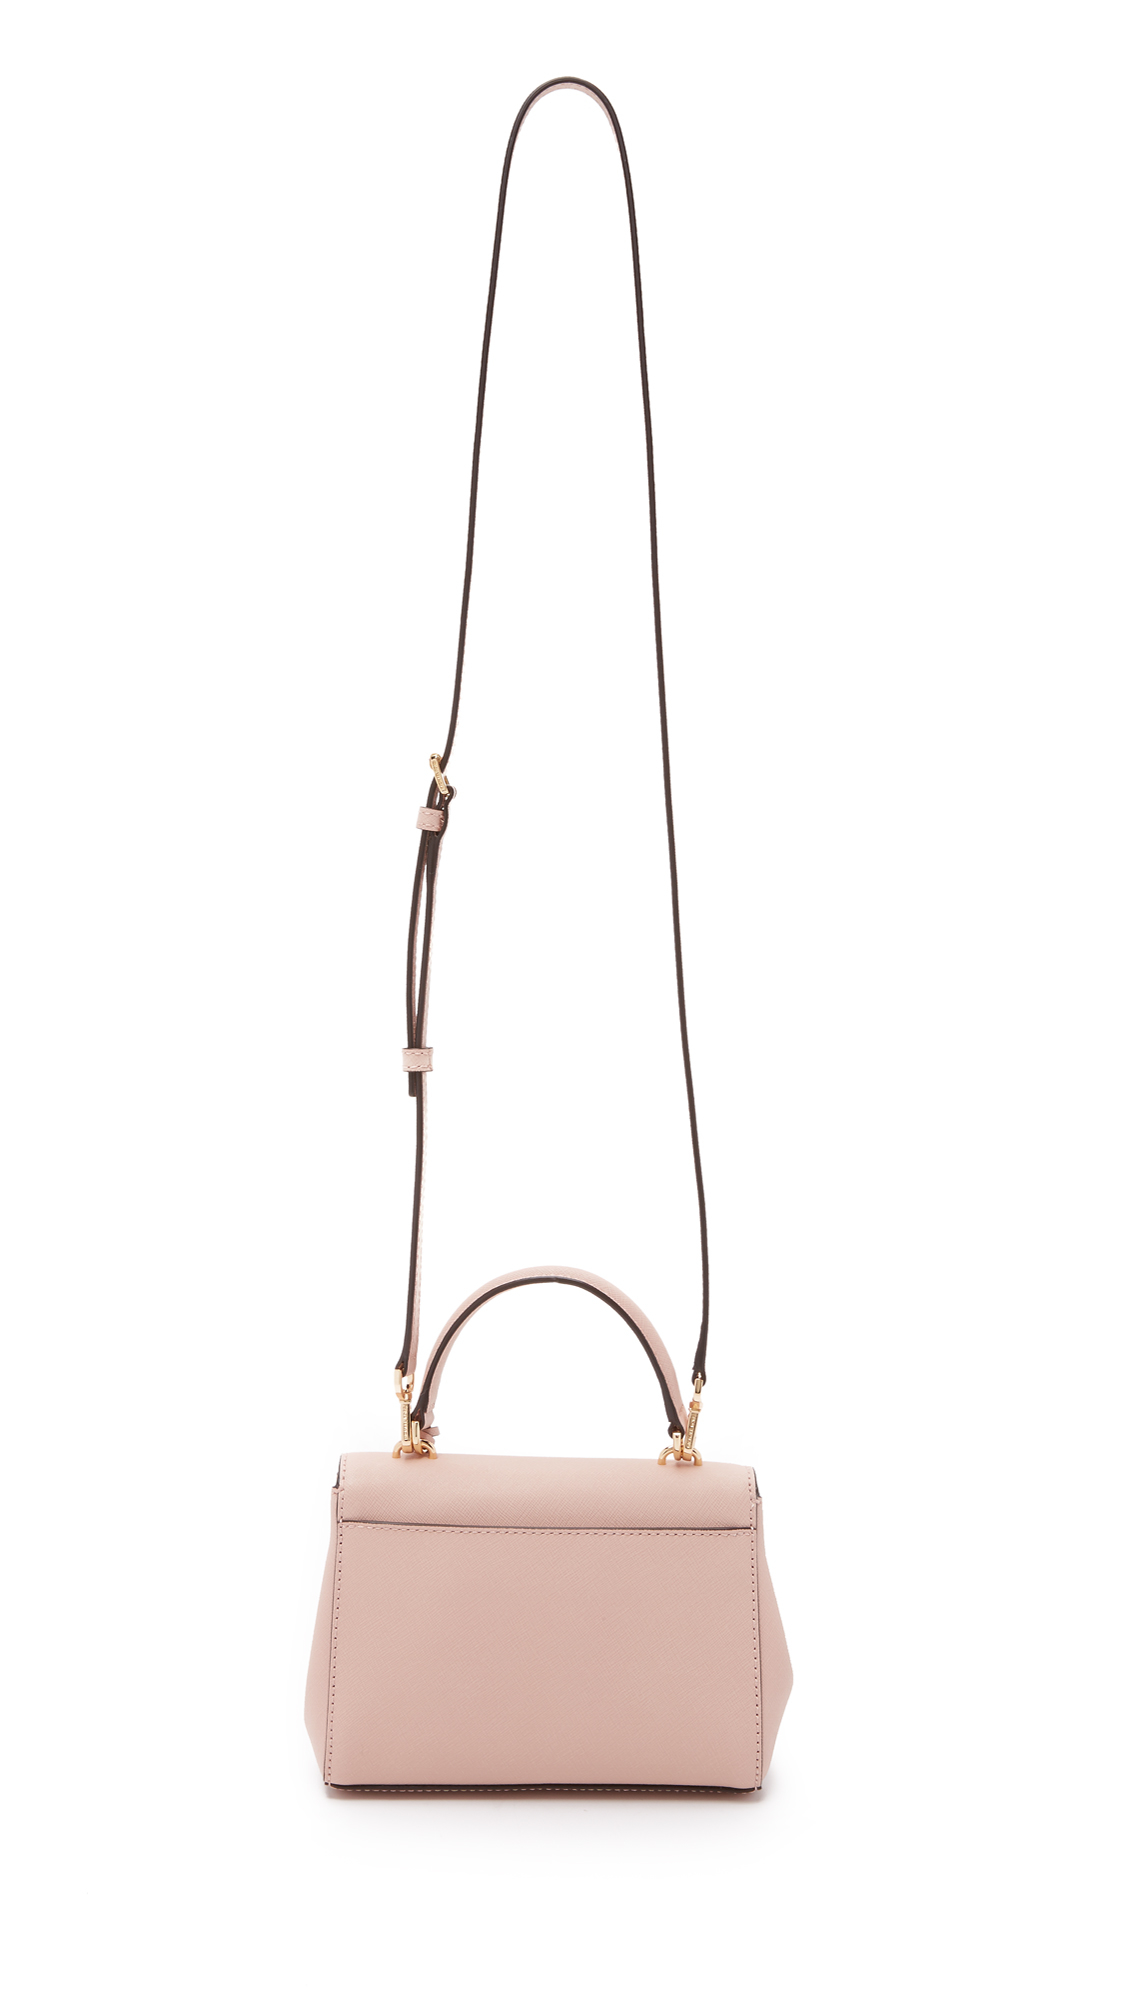 ac4c9eb384c1 MICHAEL Michael Kors Ava Extra Small Cross Body Bag - Ballet in Pink - Lyst